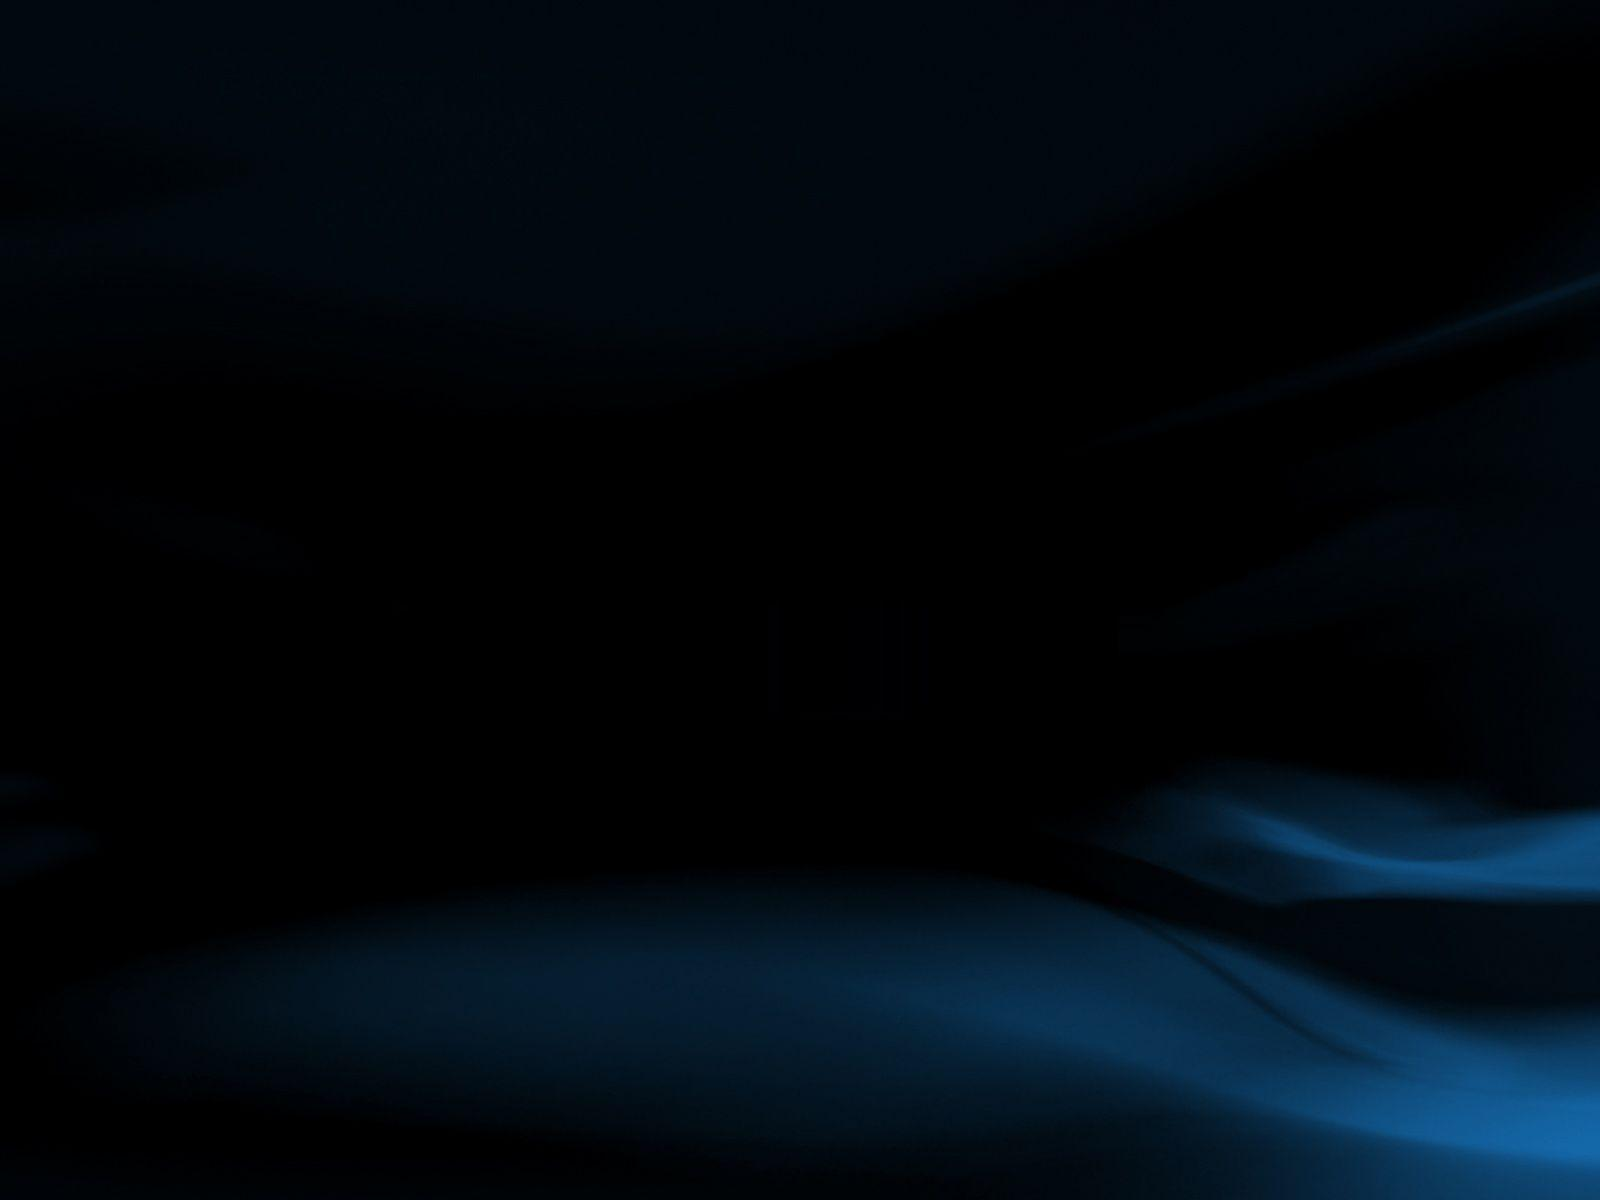 Black And Blue Abstract Wallpapers 1600x1200